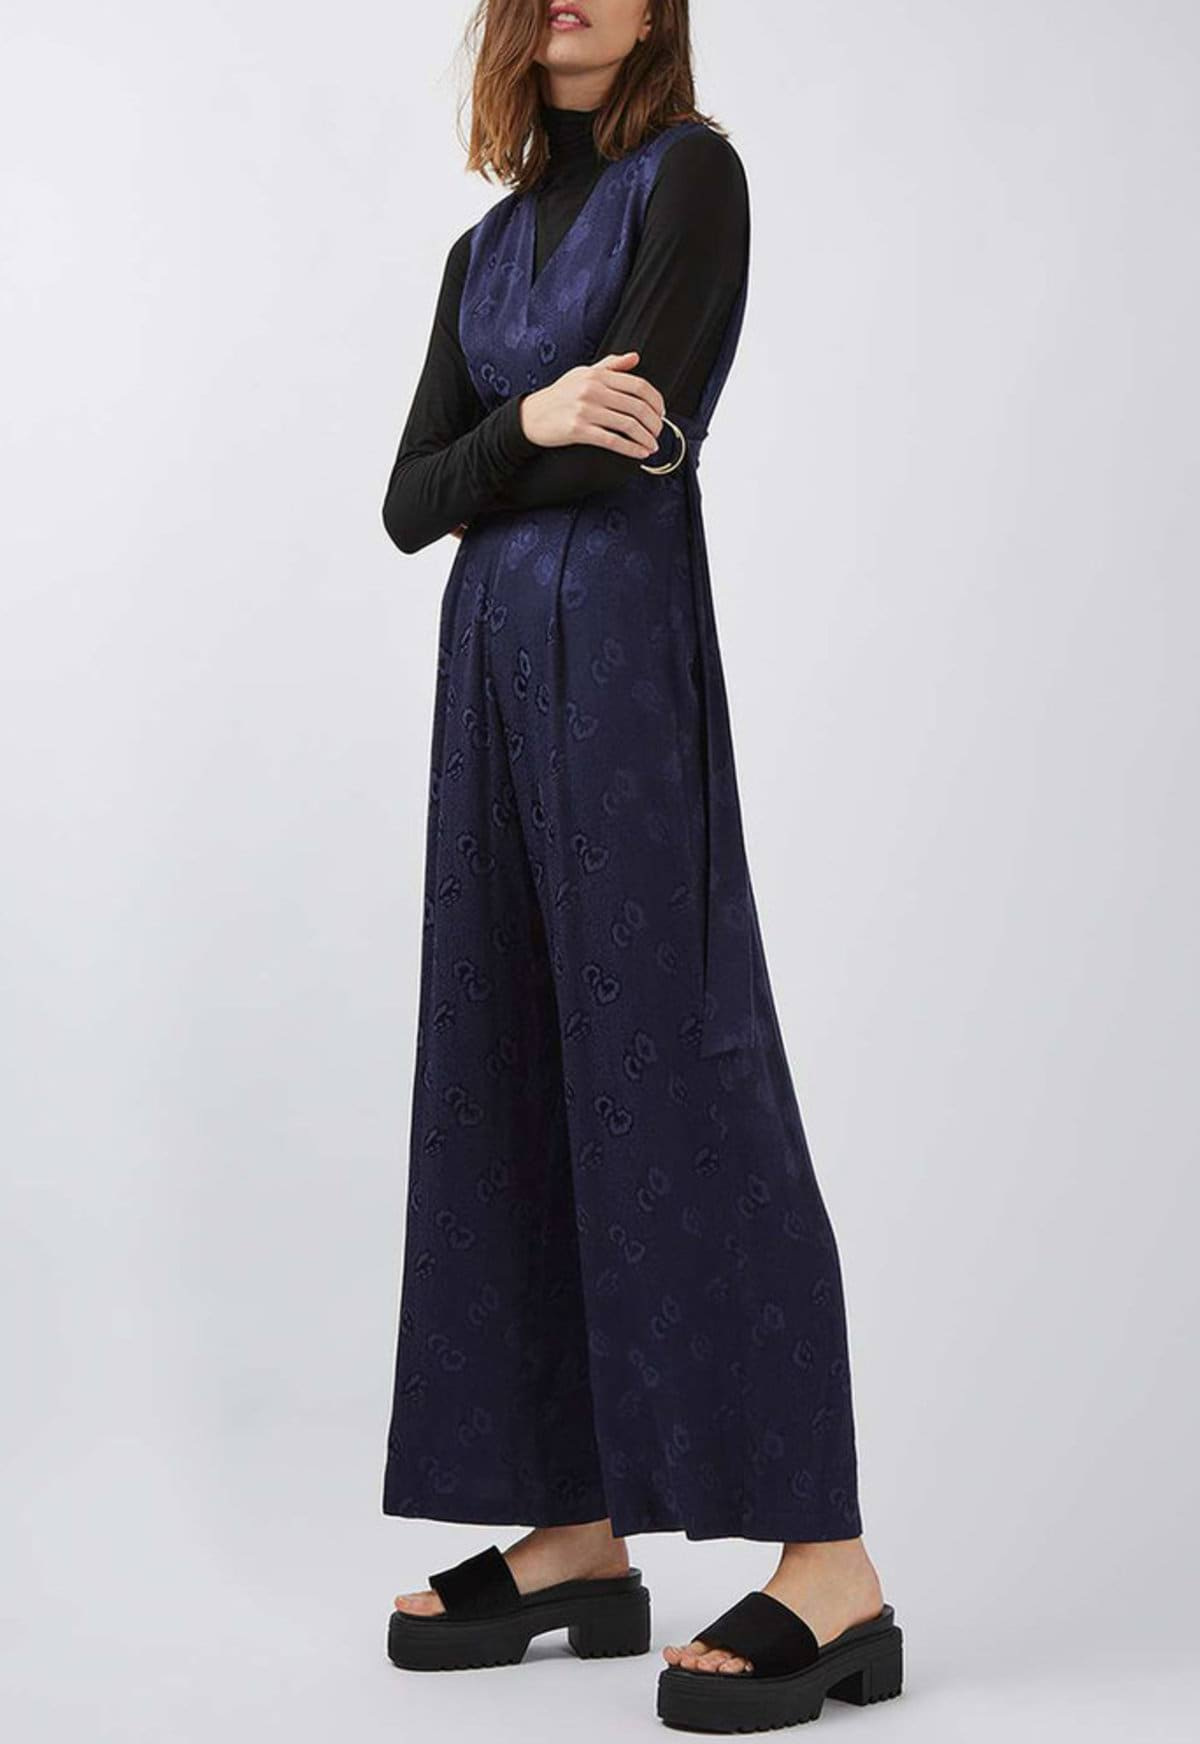 121516-jumpsuits-for-women-6